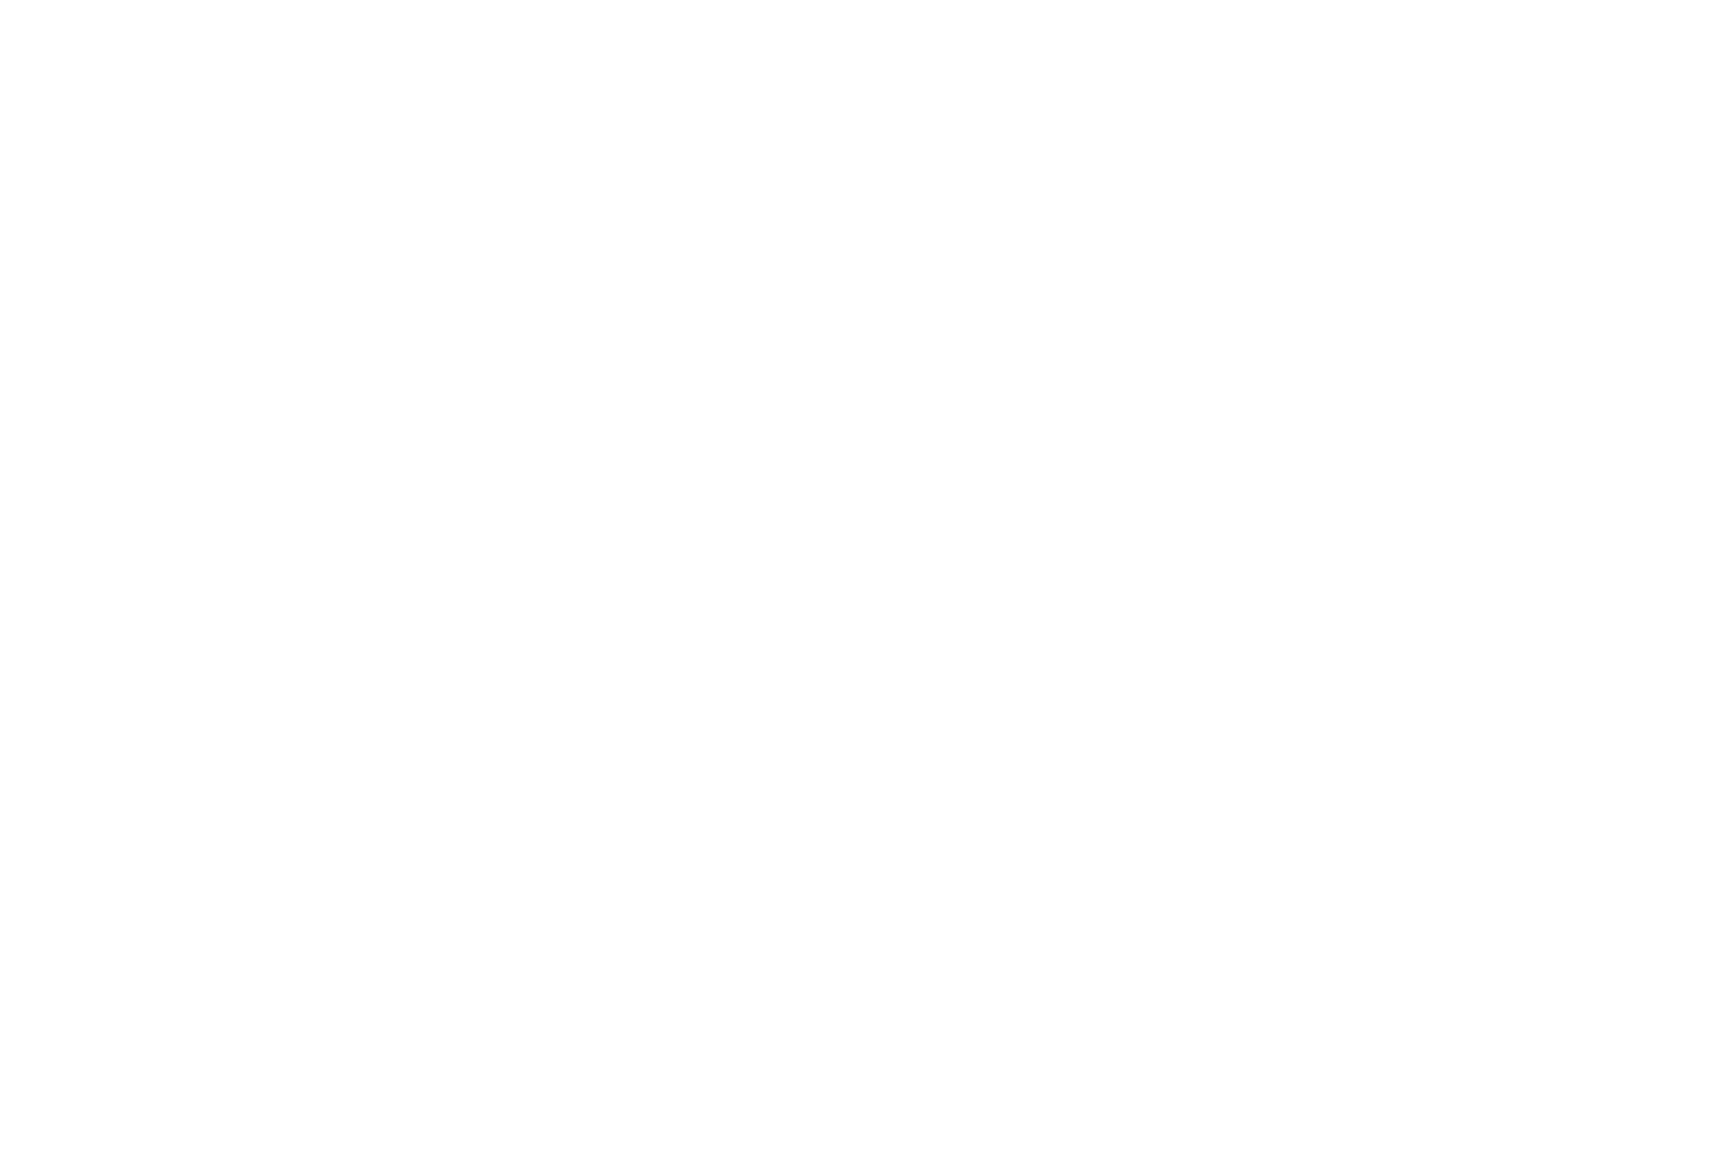 OFFICIAL SELECTION - Morocco Adventure Film Festival - 2018 (1).png